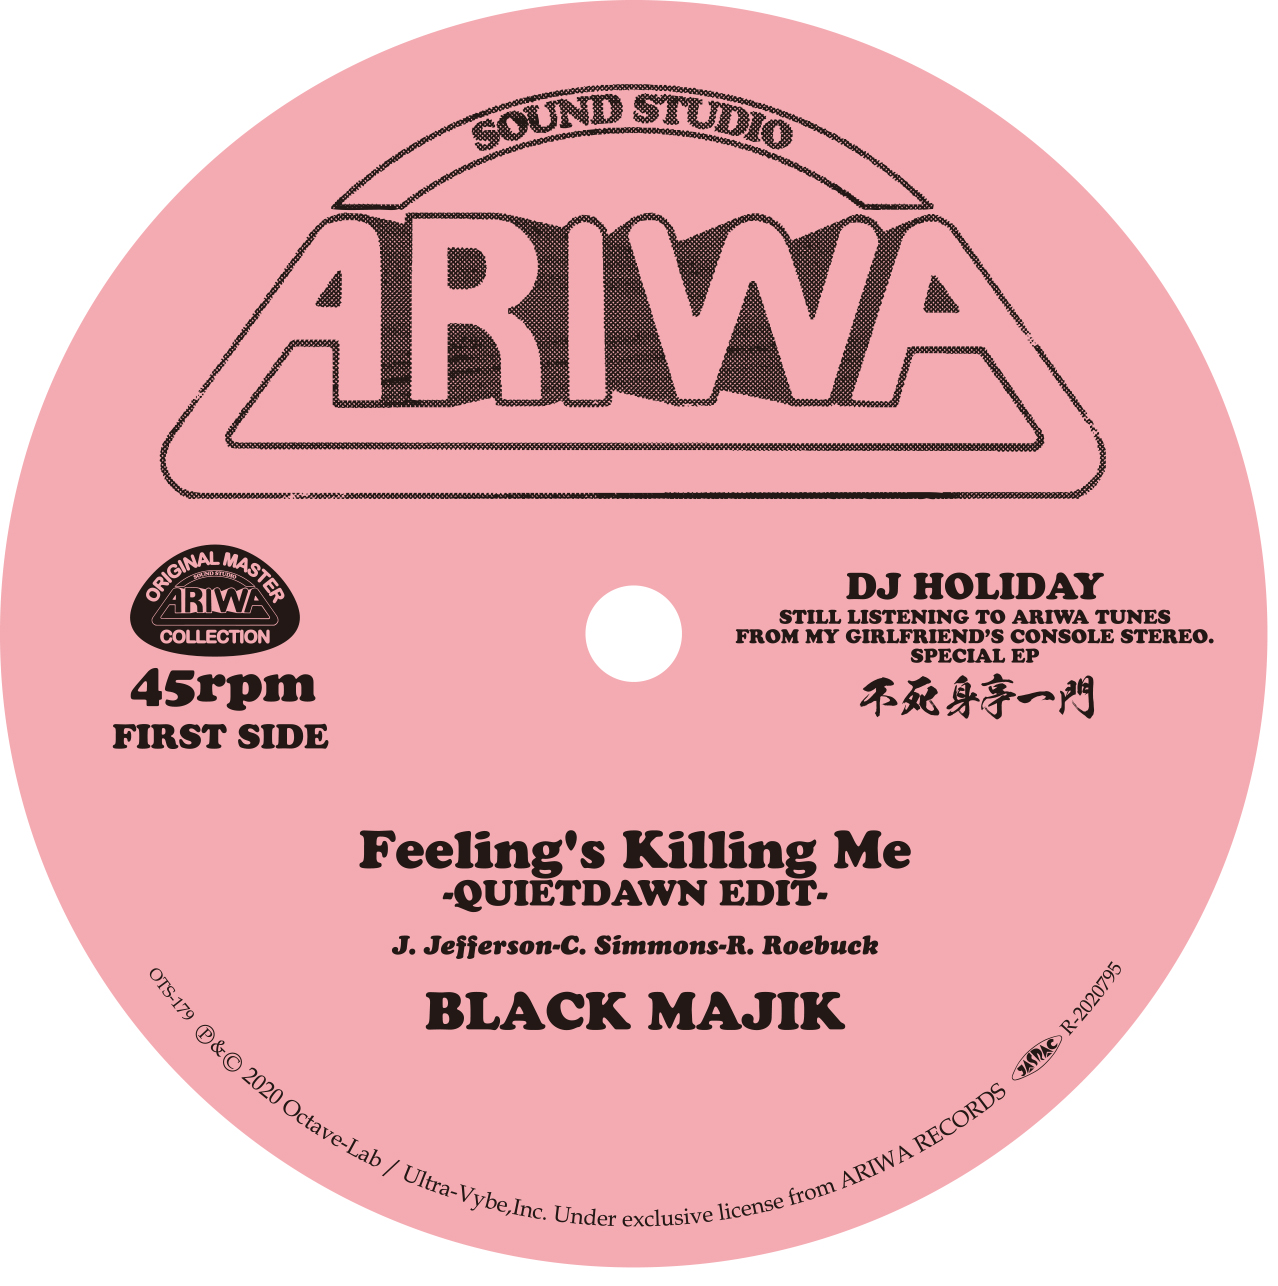 08-004 Black Majik/Yona Feeling'S Killing Me (Quietdawn Edit) / Could It Be I'M Falling In Love (Quietdawn Edit)